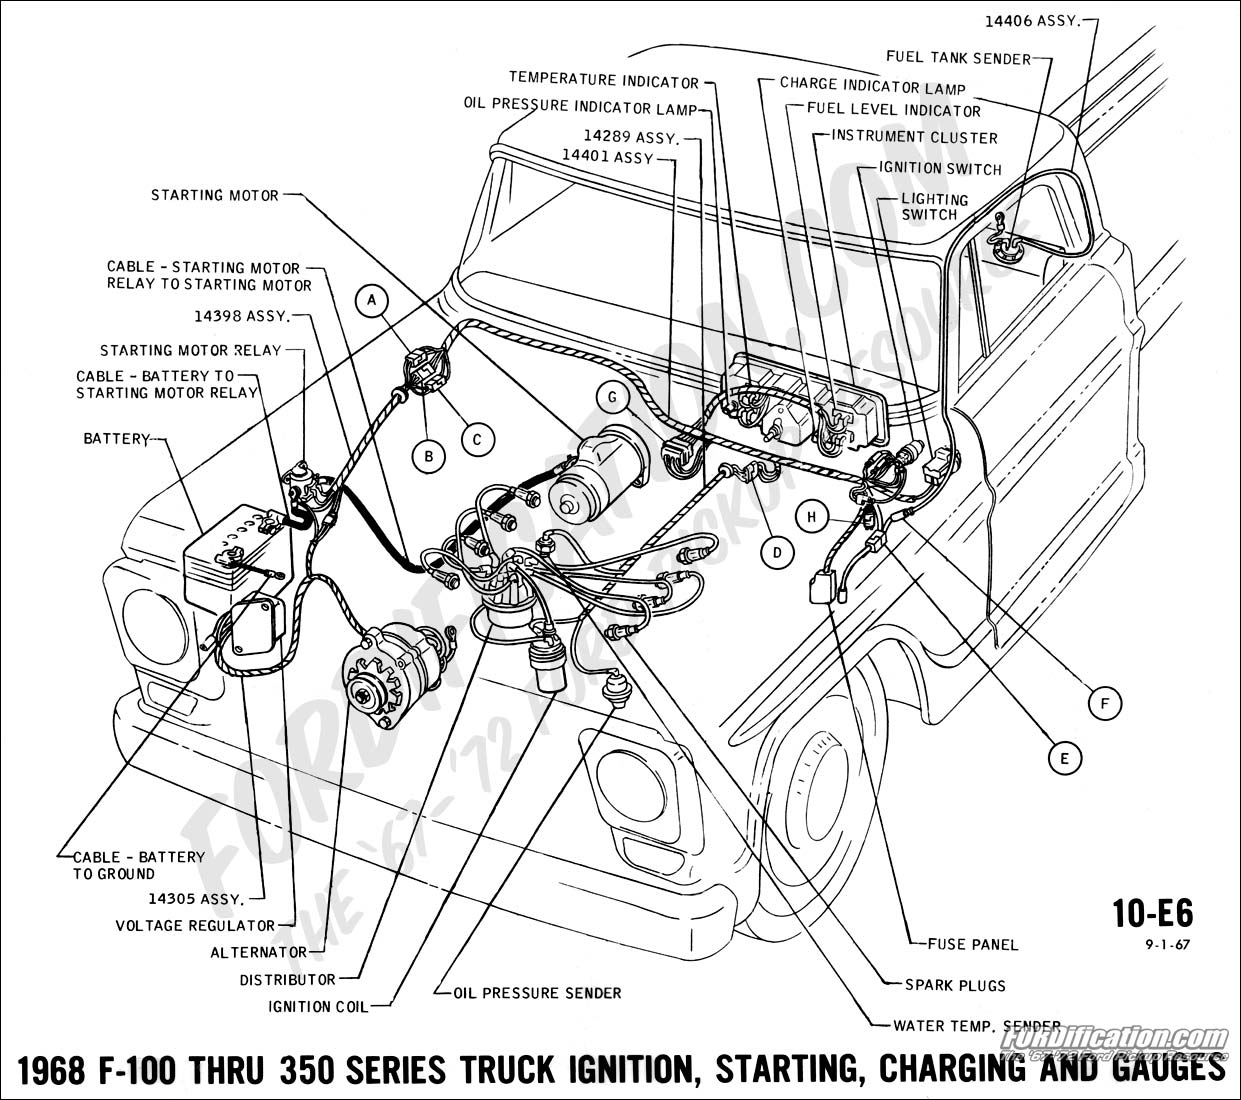 hight resolution of 1968 f 100 thru f 350 ignition starting charging and gauges ford truck